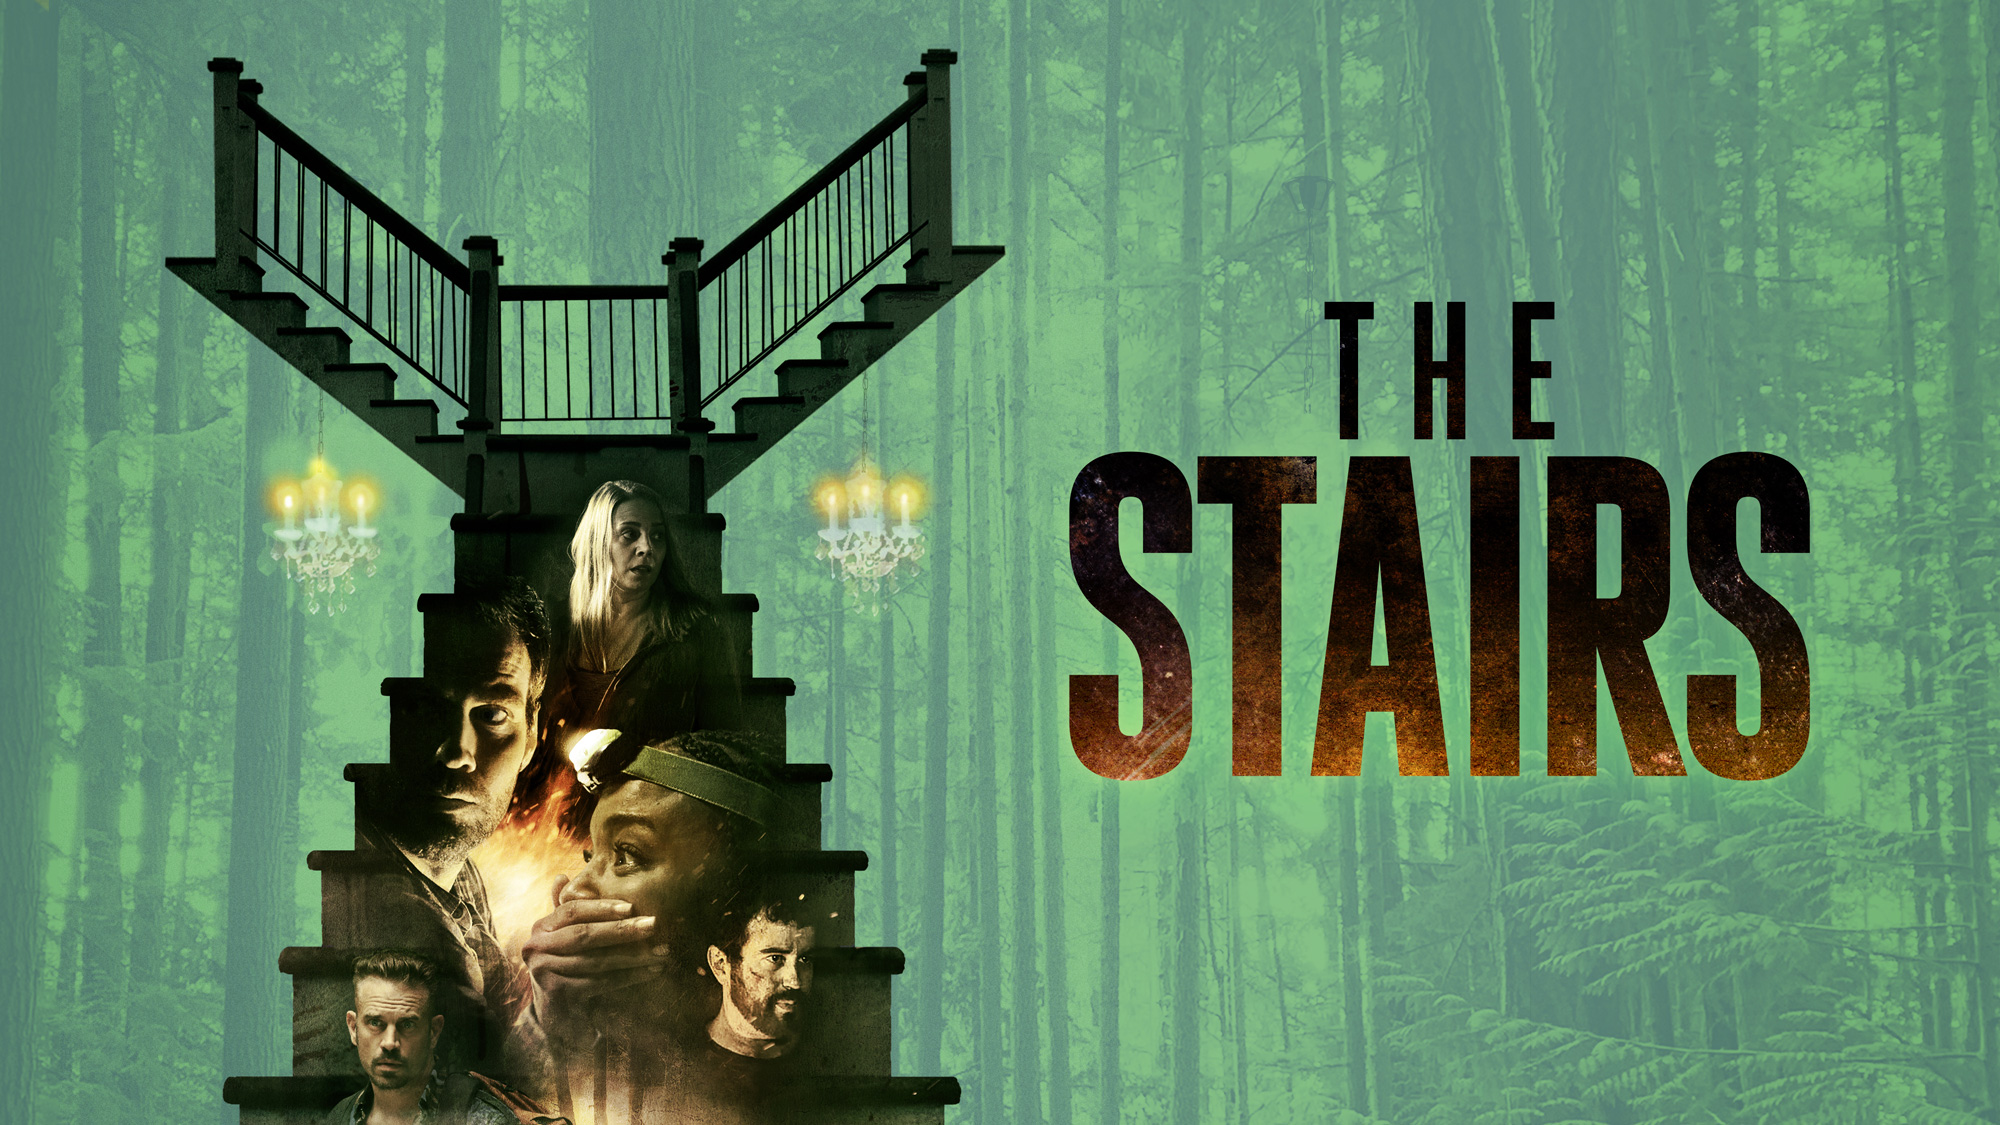 THE STAIRS poster image